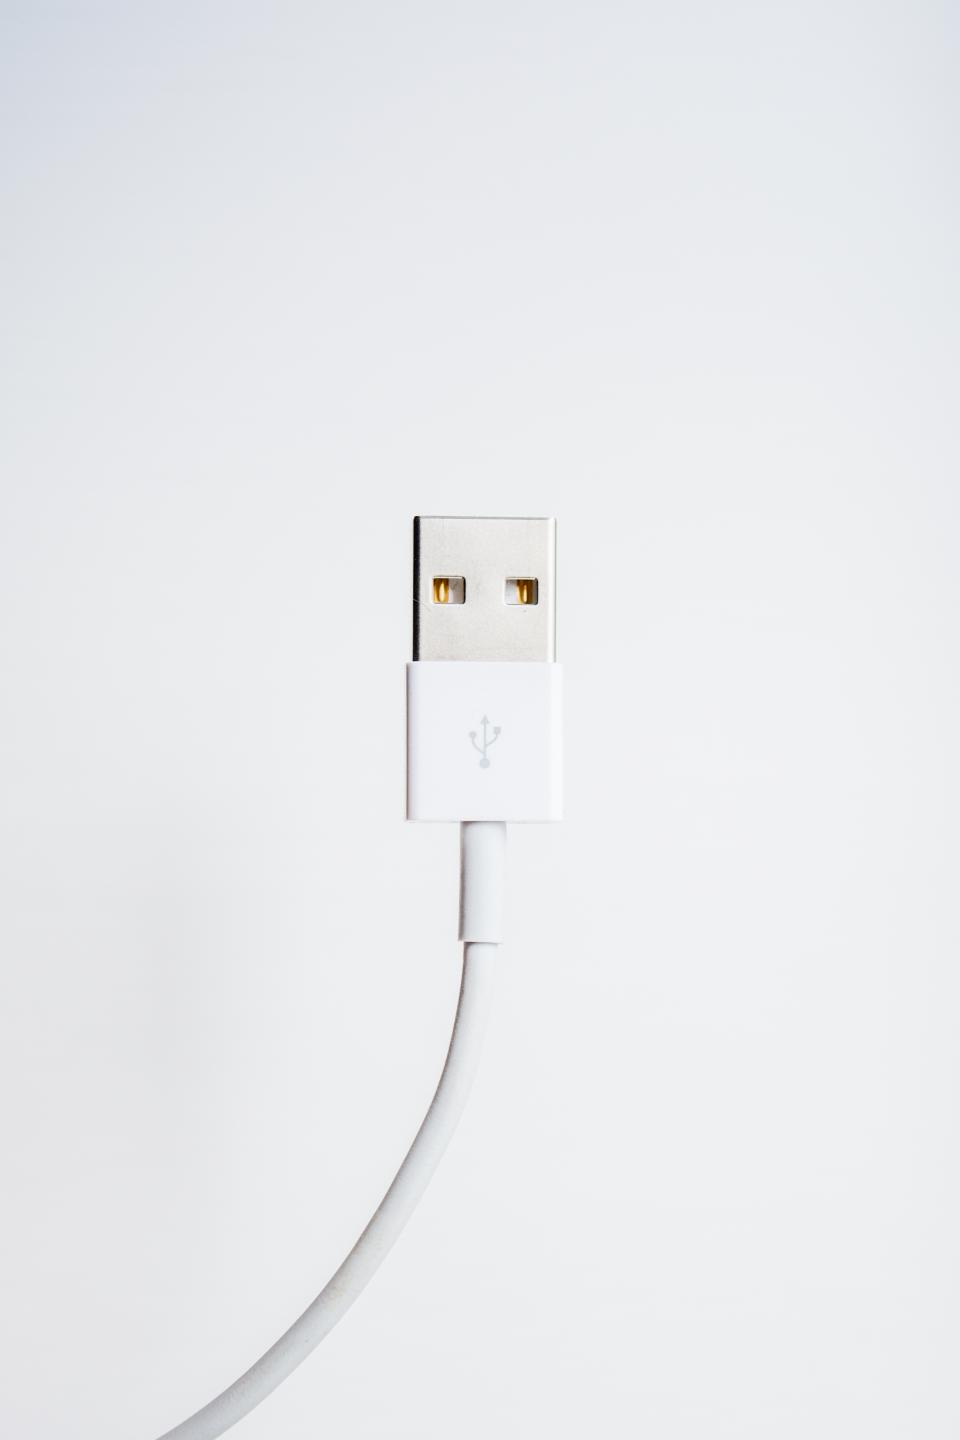 usb cord white wall technology